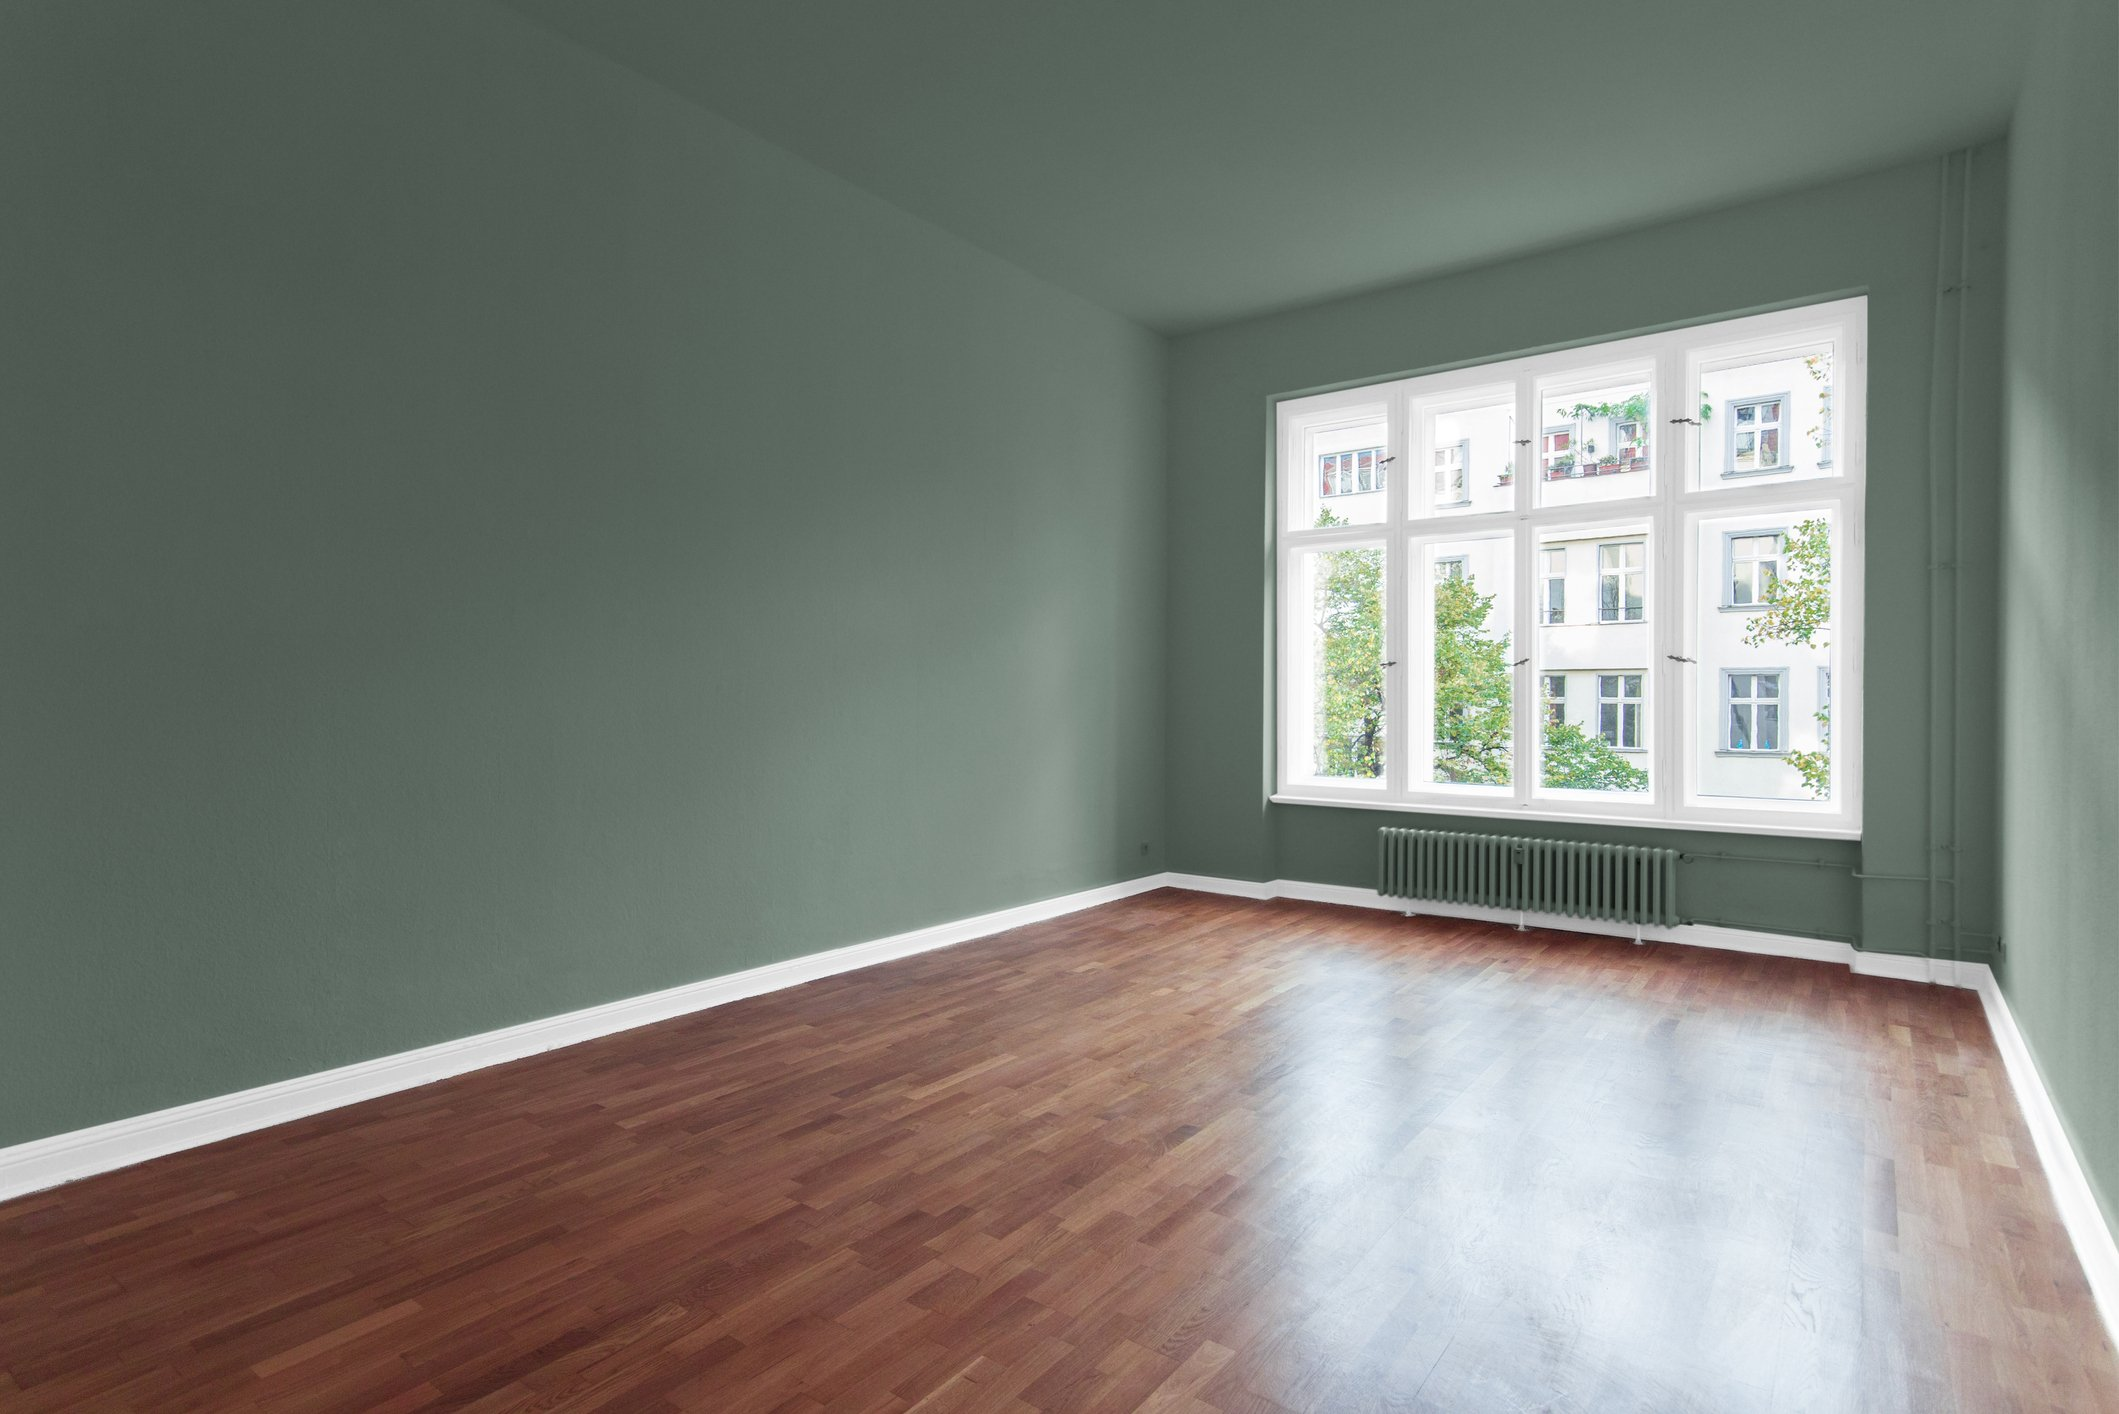 empty room with green, walls and wooden floor